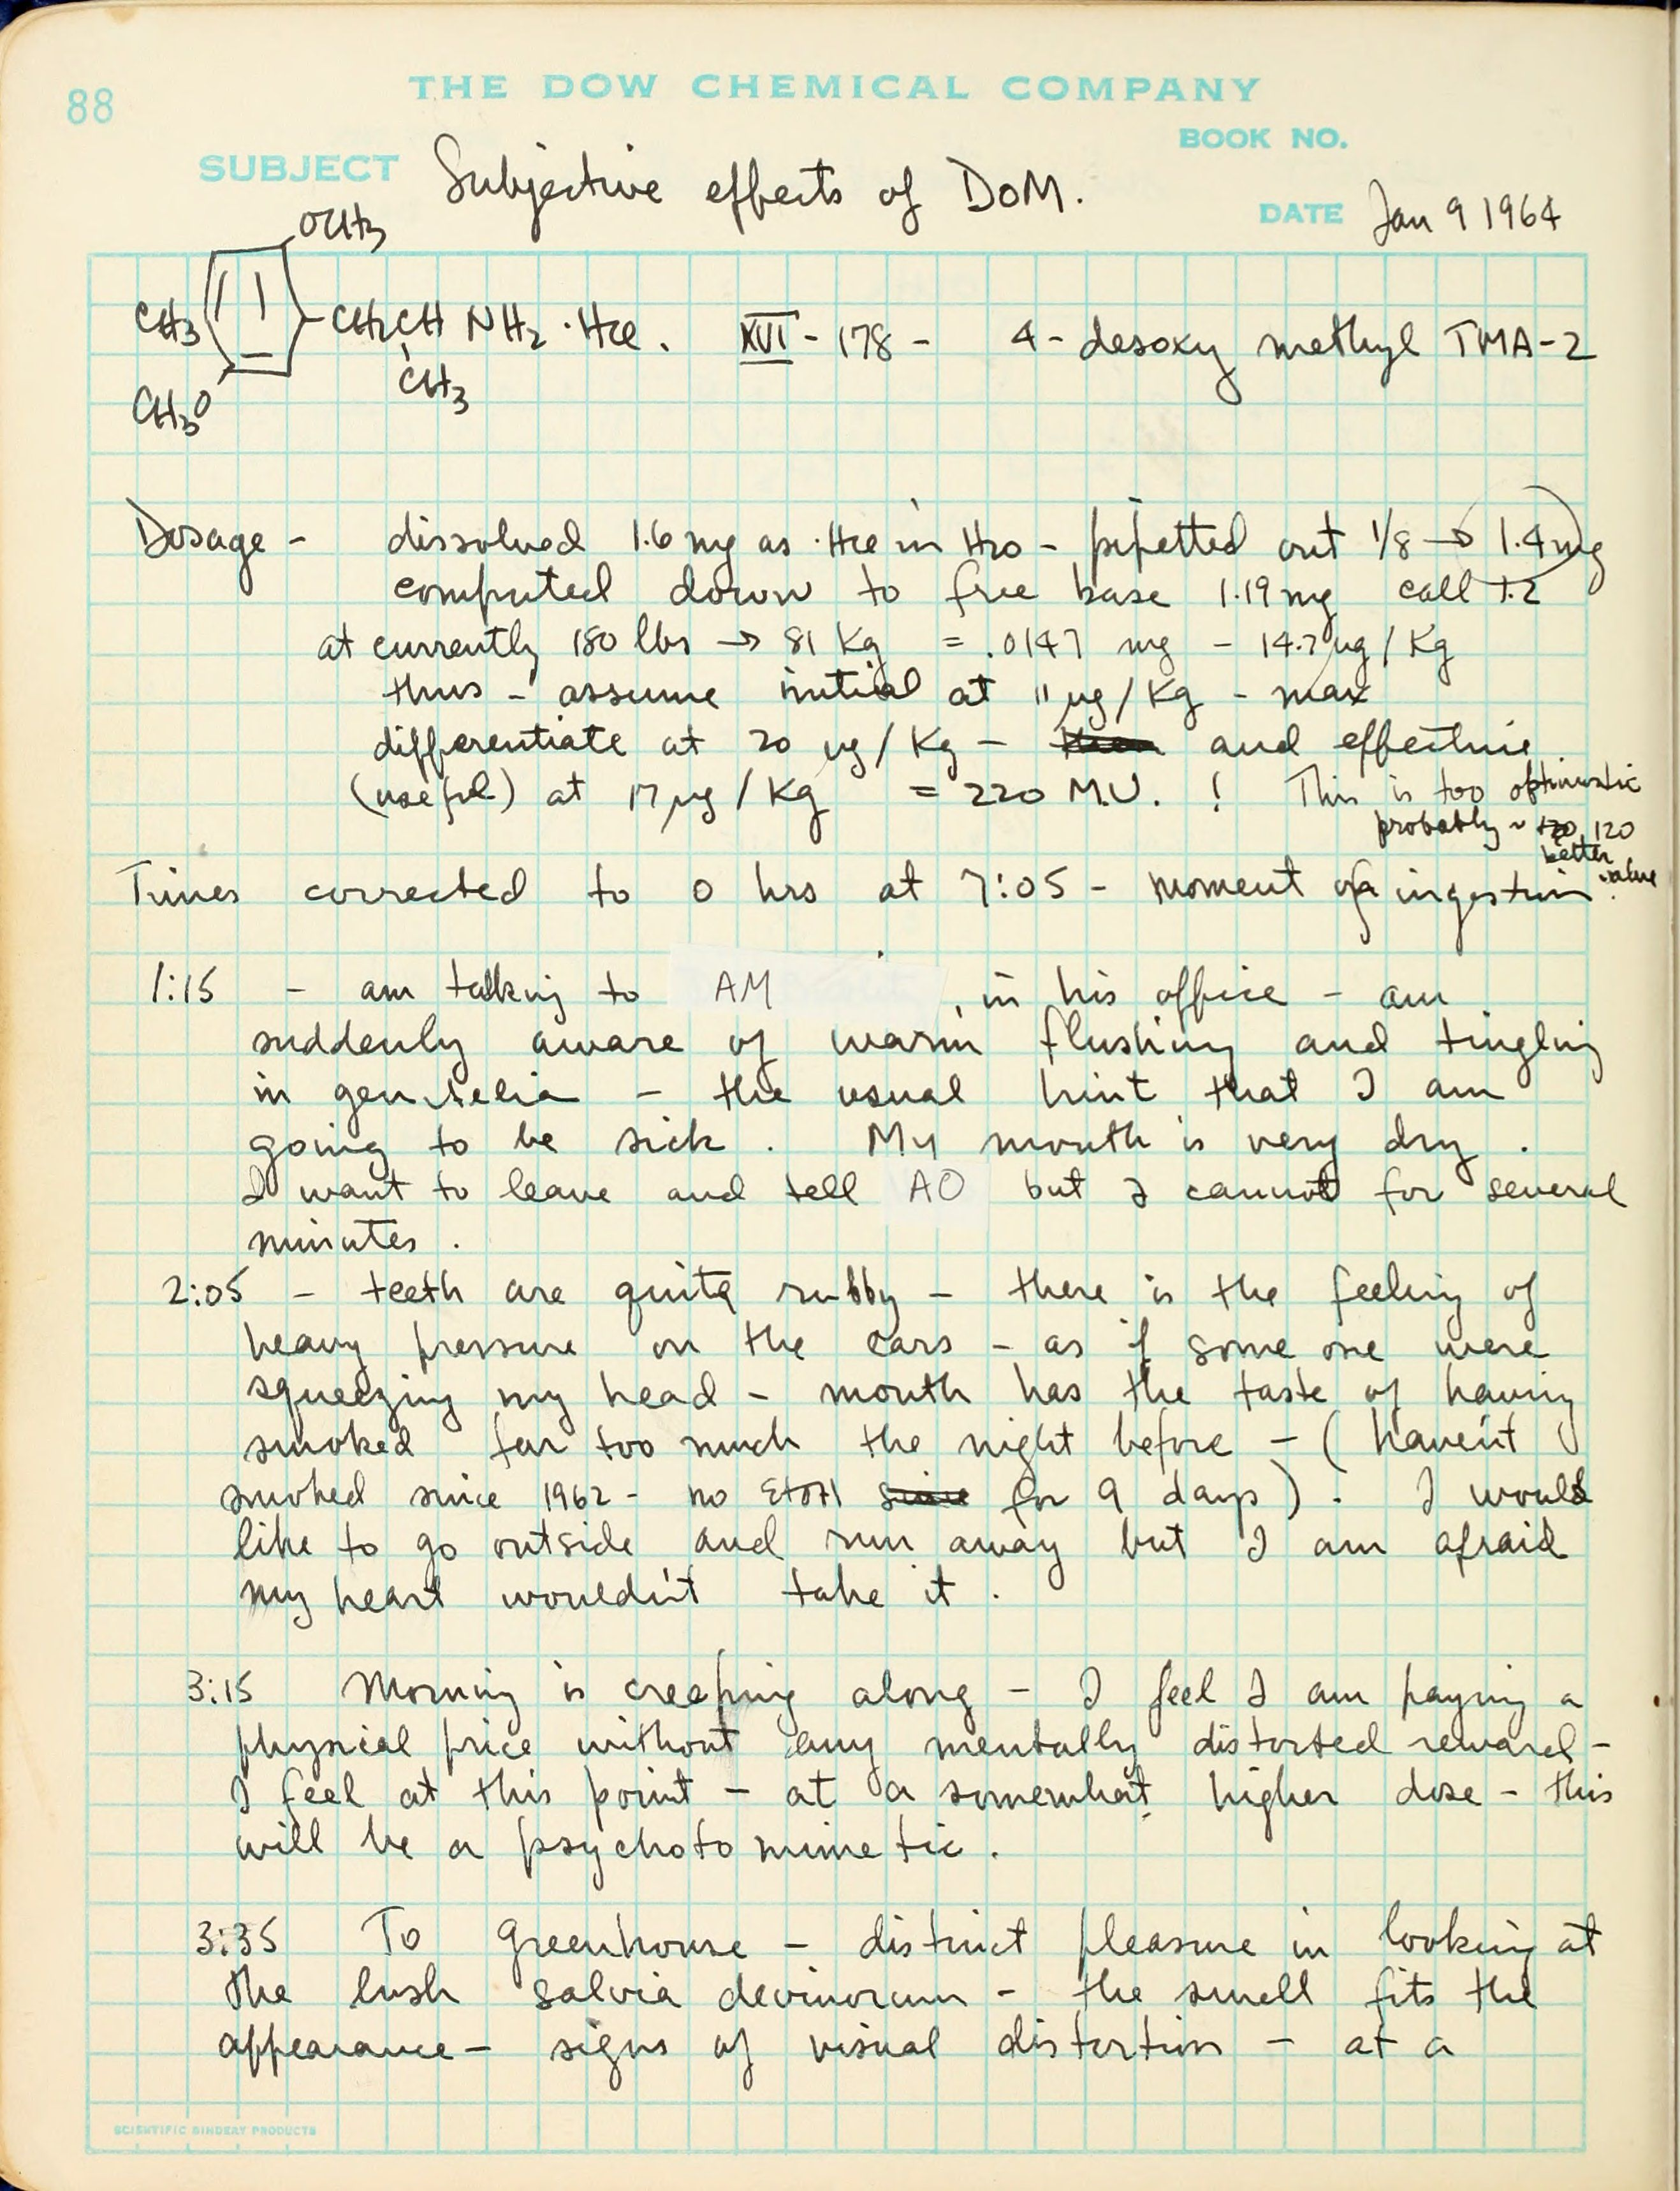 As Handwritten Notes In Book 1 Page 88 89 Of The Shulgin Lab Books ...